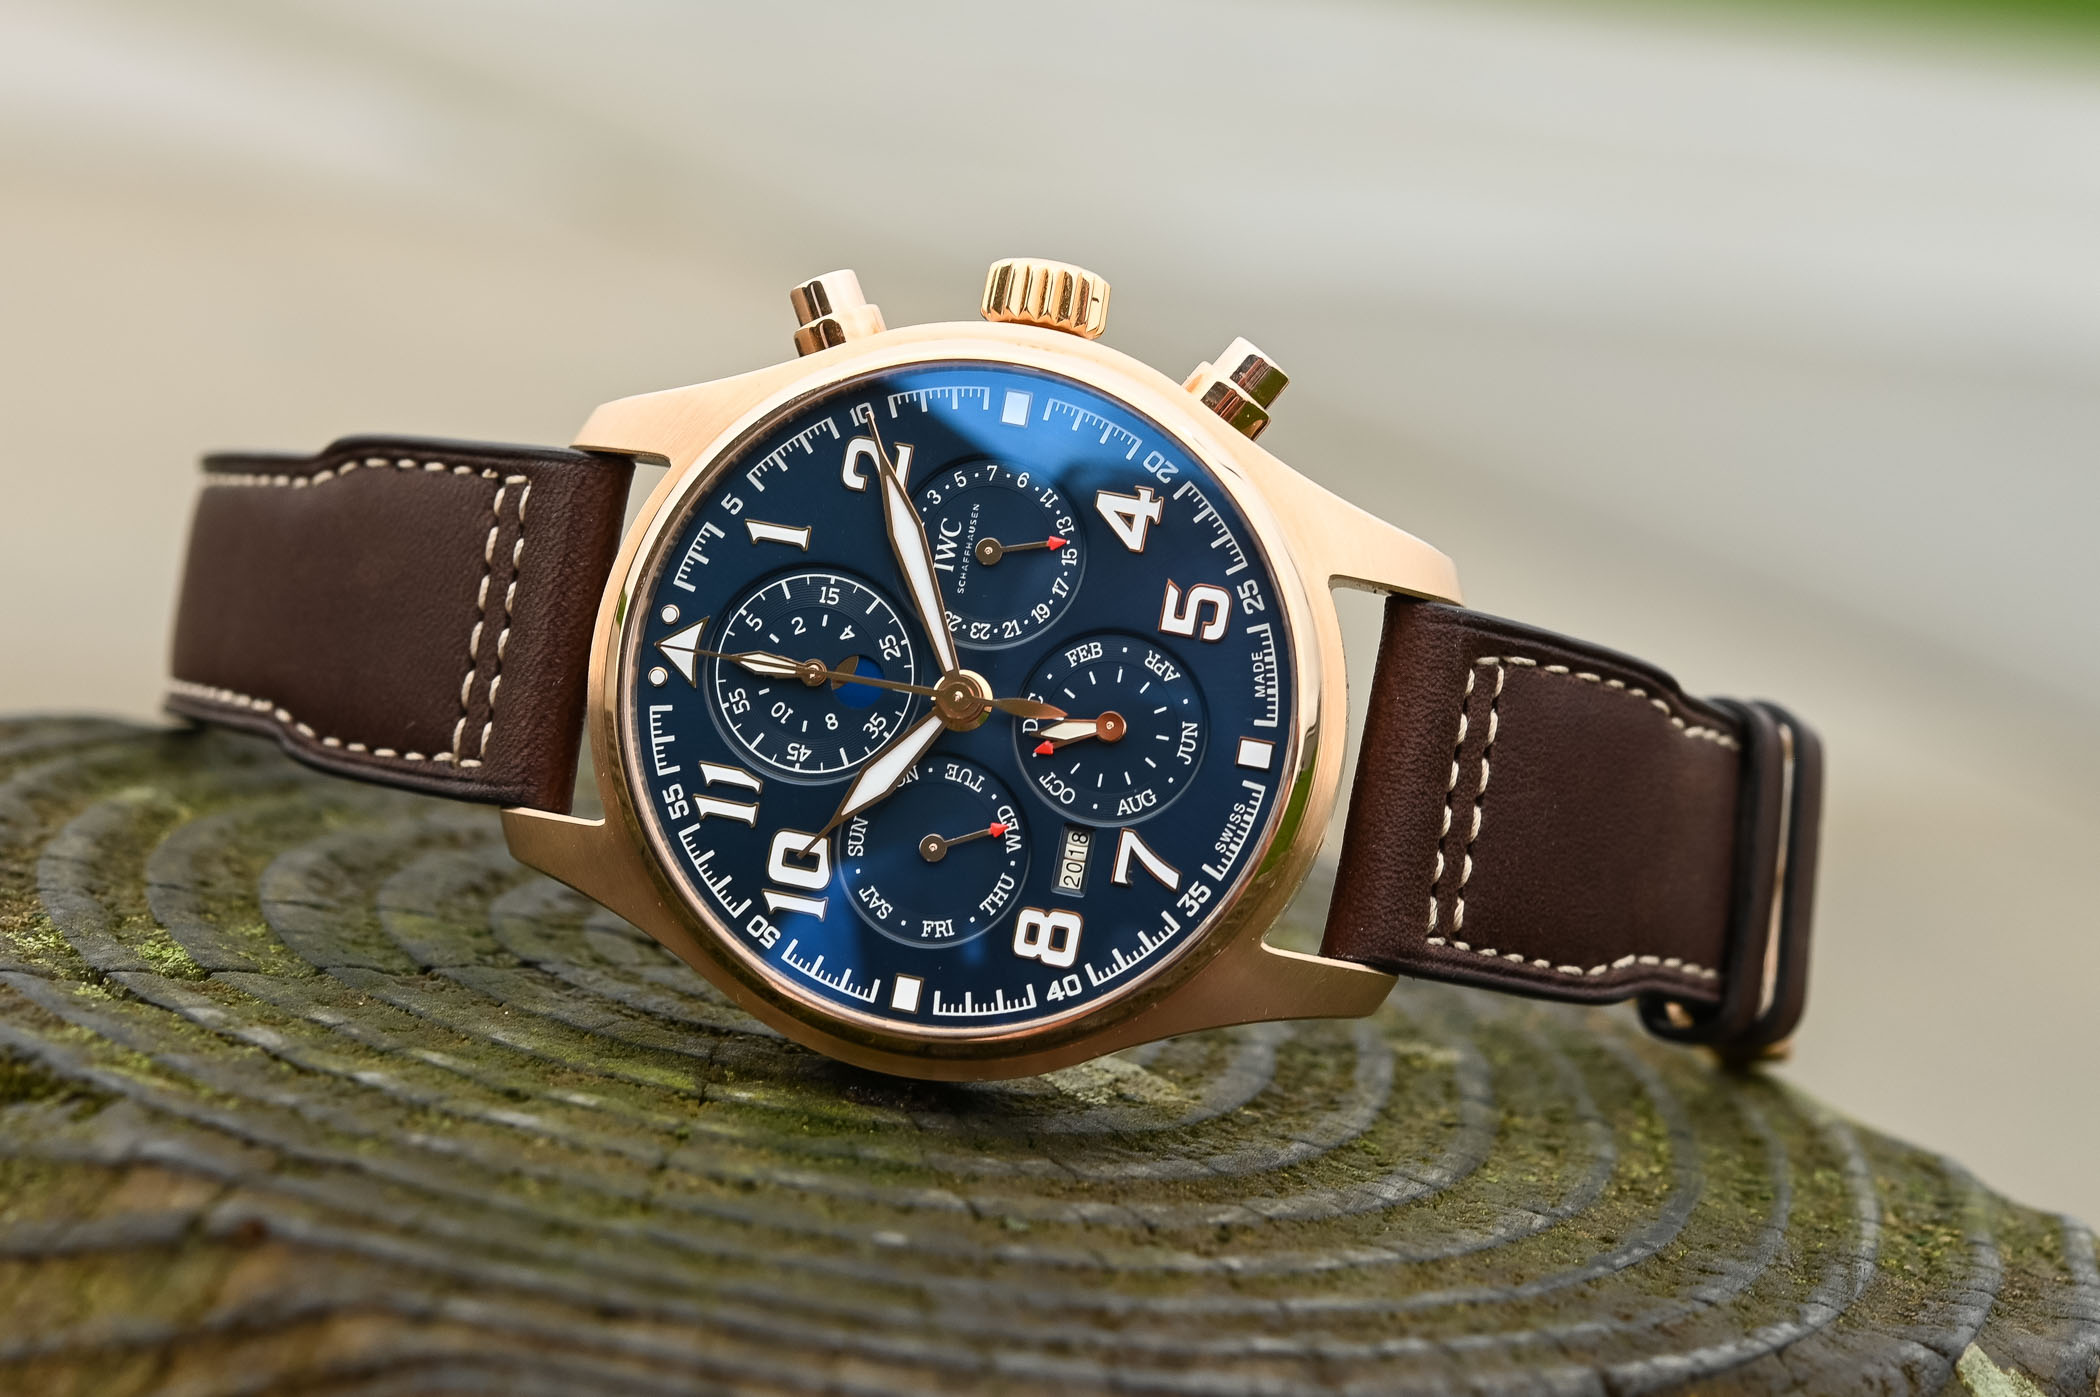 IWC Pilots Watch Perpetual Calendar Chronograph Le Petit Prince IW392202 - SIHH 2019 - 6